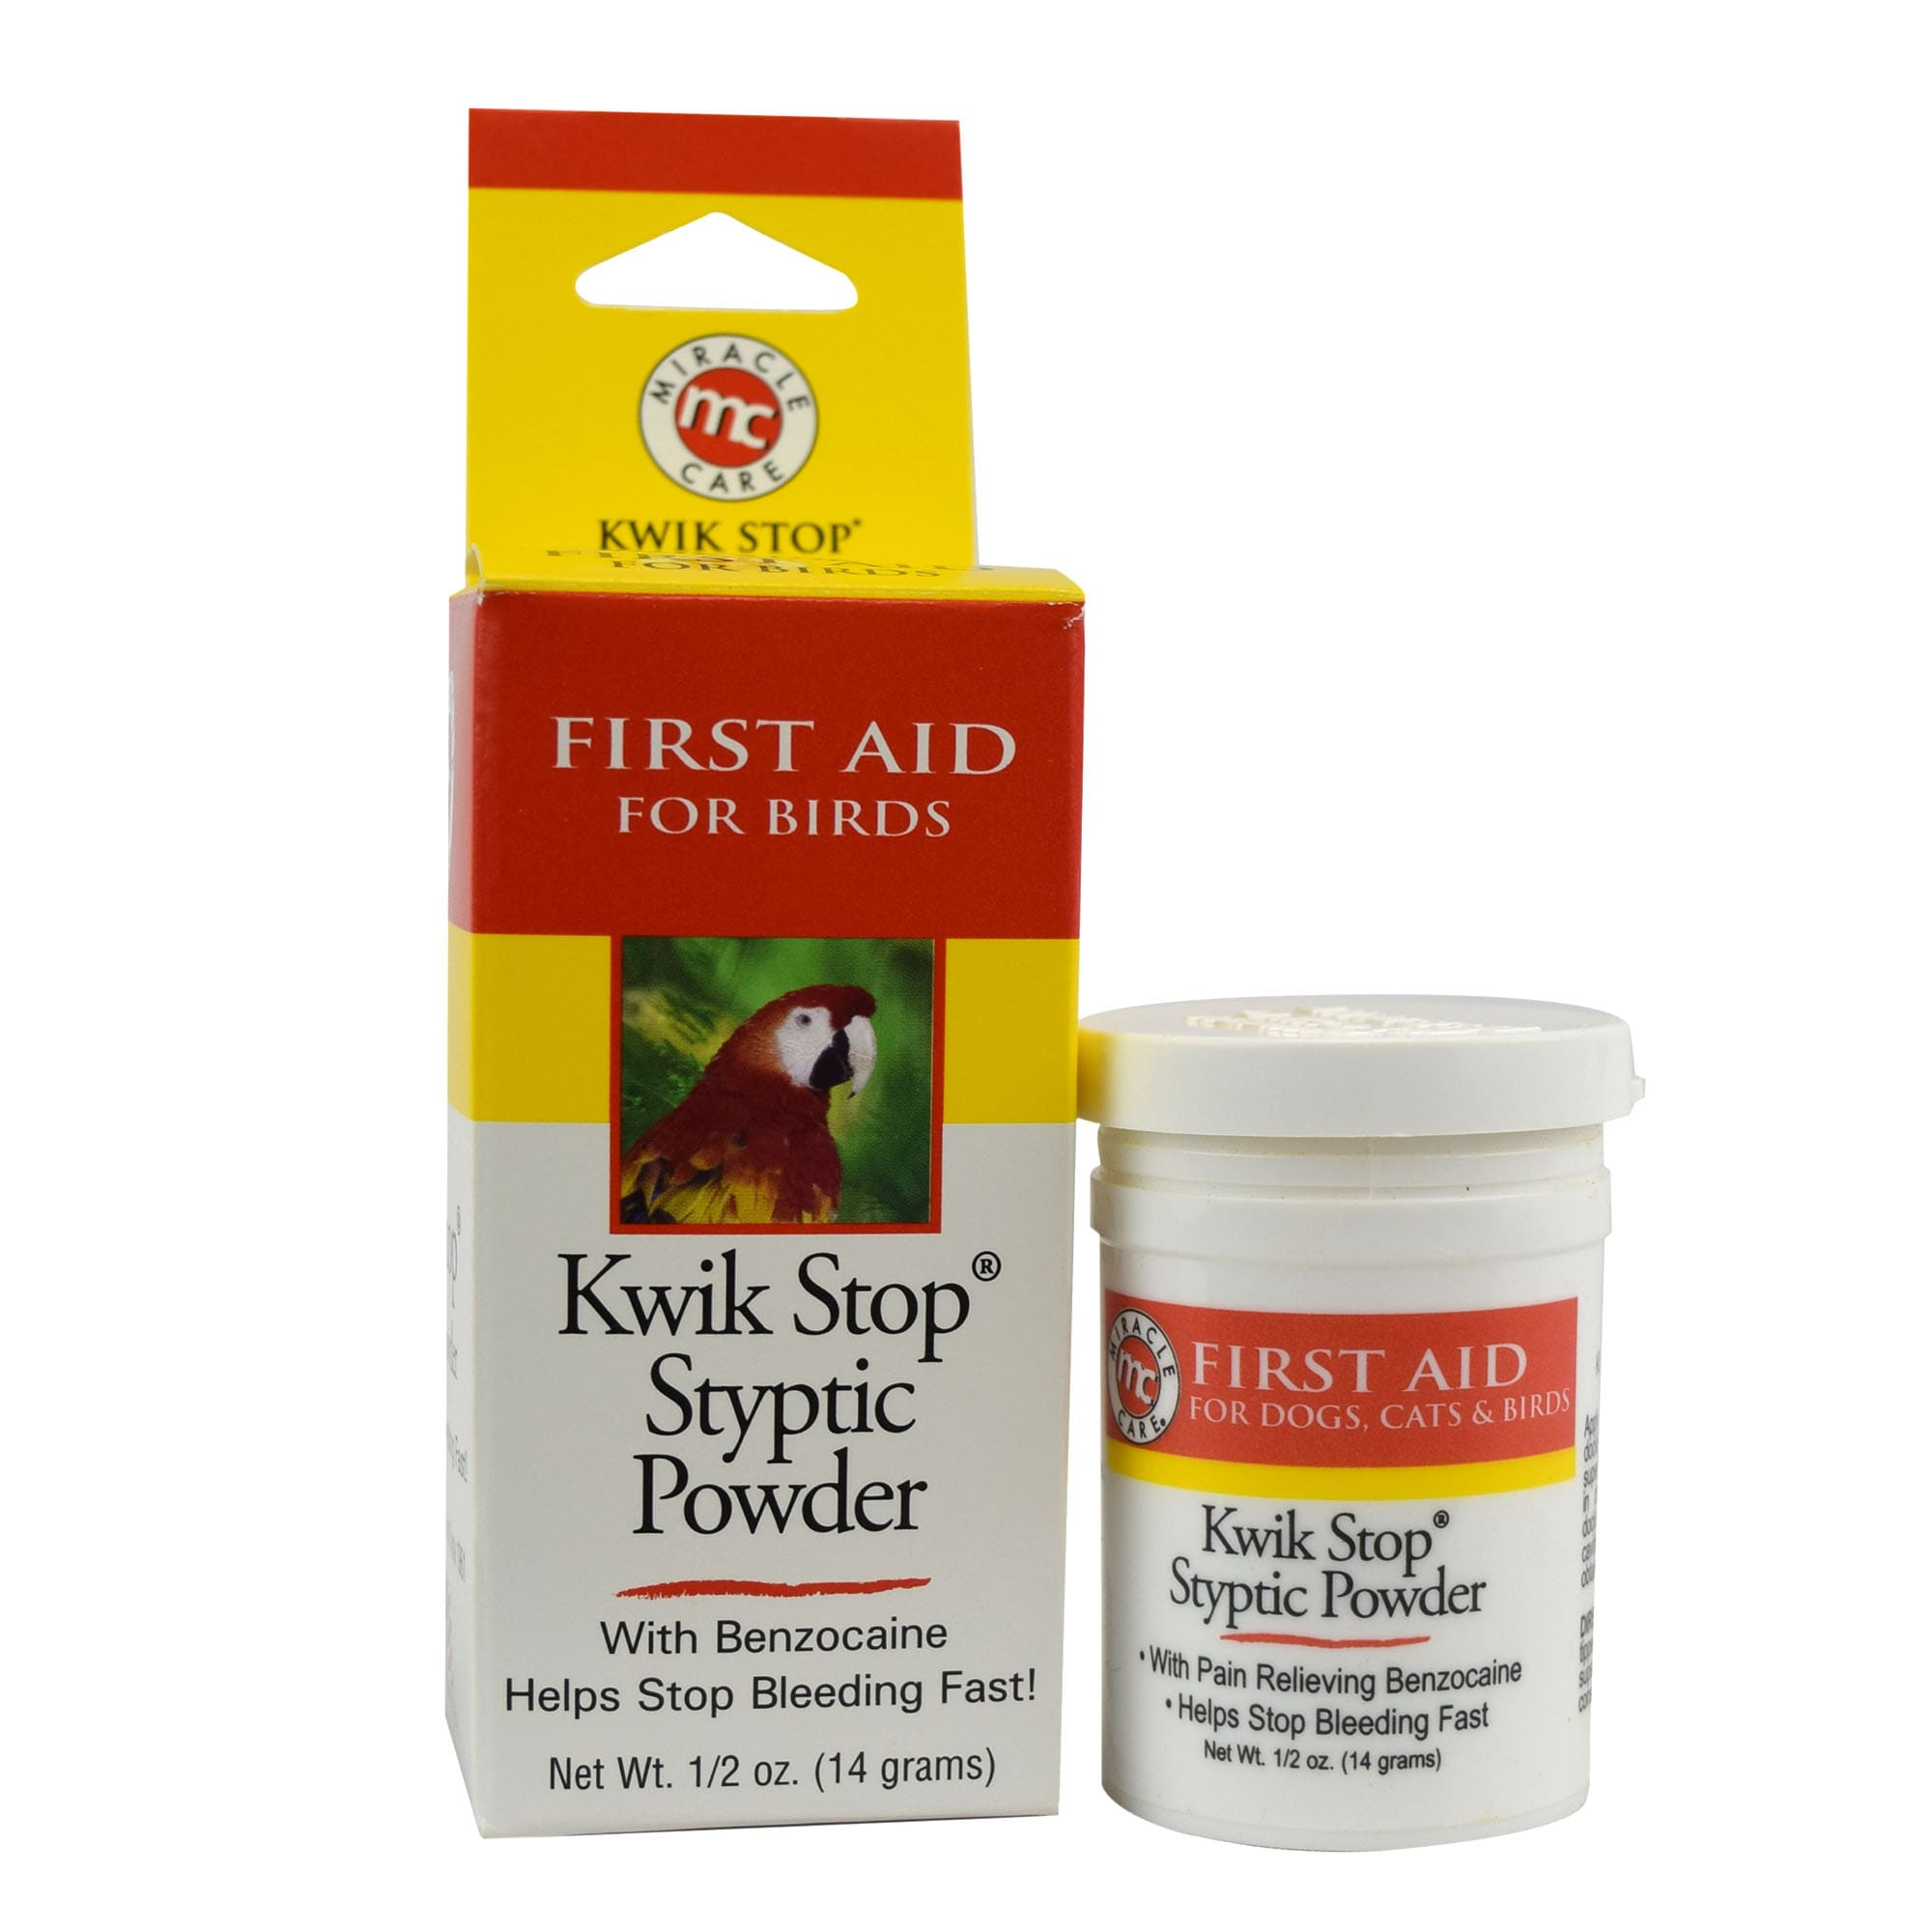 Kwik Stop Styptic Powder Feather Glo for Birds